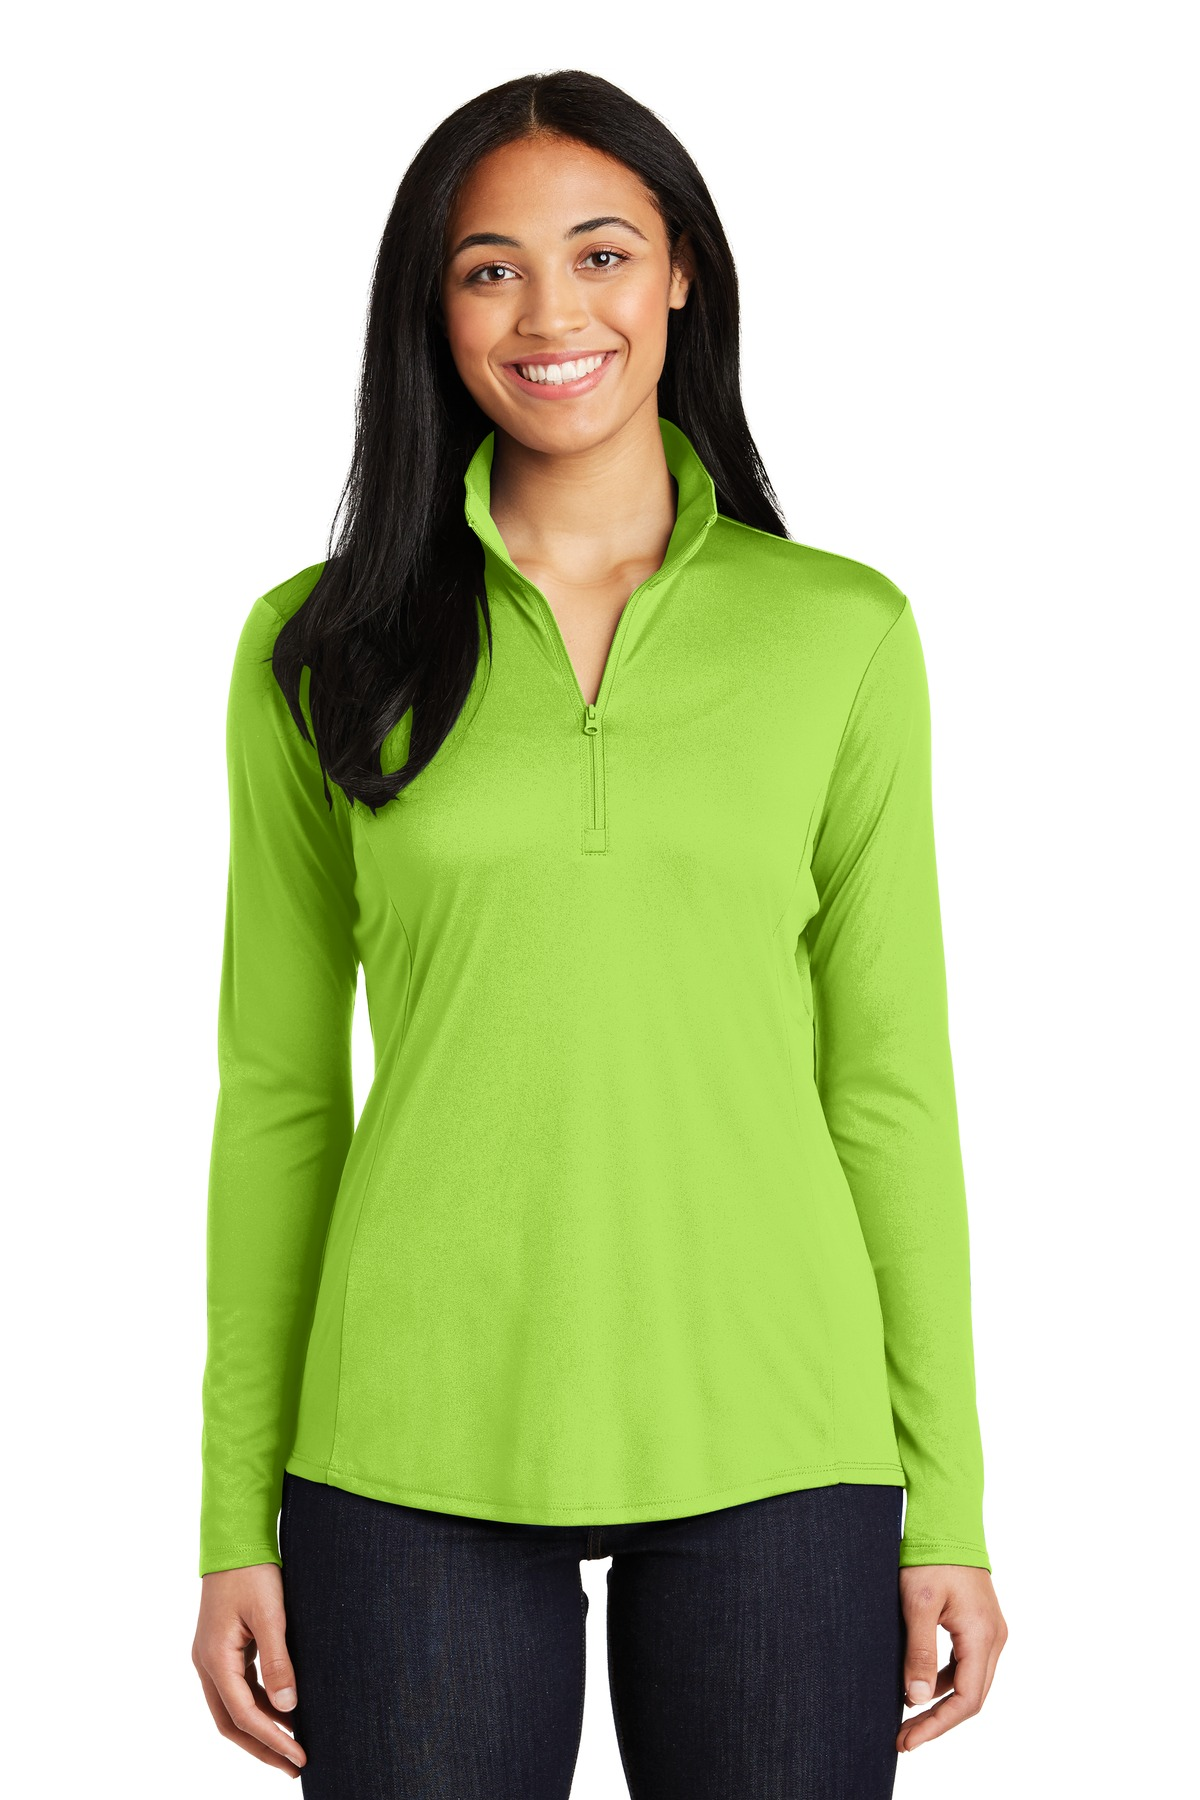 Sport-Tek ®  Ladies PosiCharge ®  Competitor ™  1/4-Zip Pullover. LST357 - Lime Shock